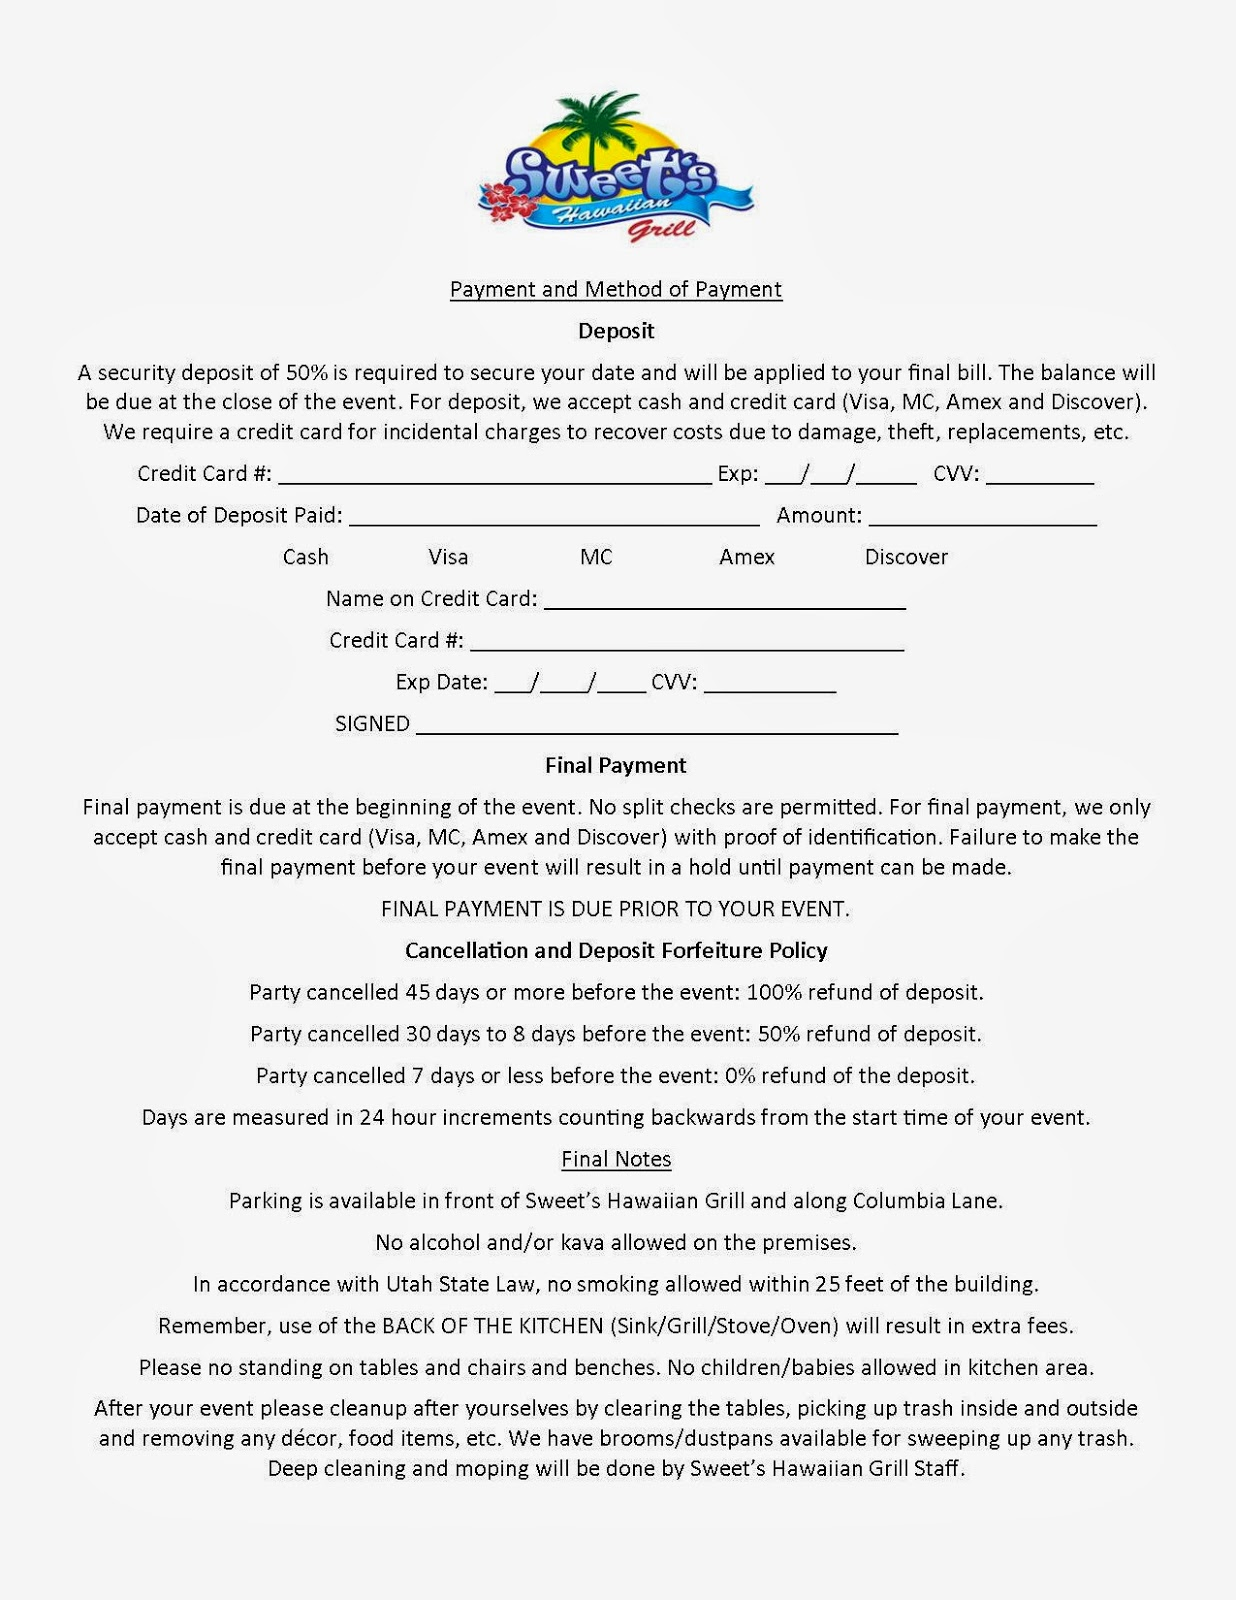 Recording Contract Template Pdf | Create professional resumes ...